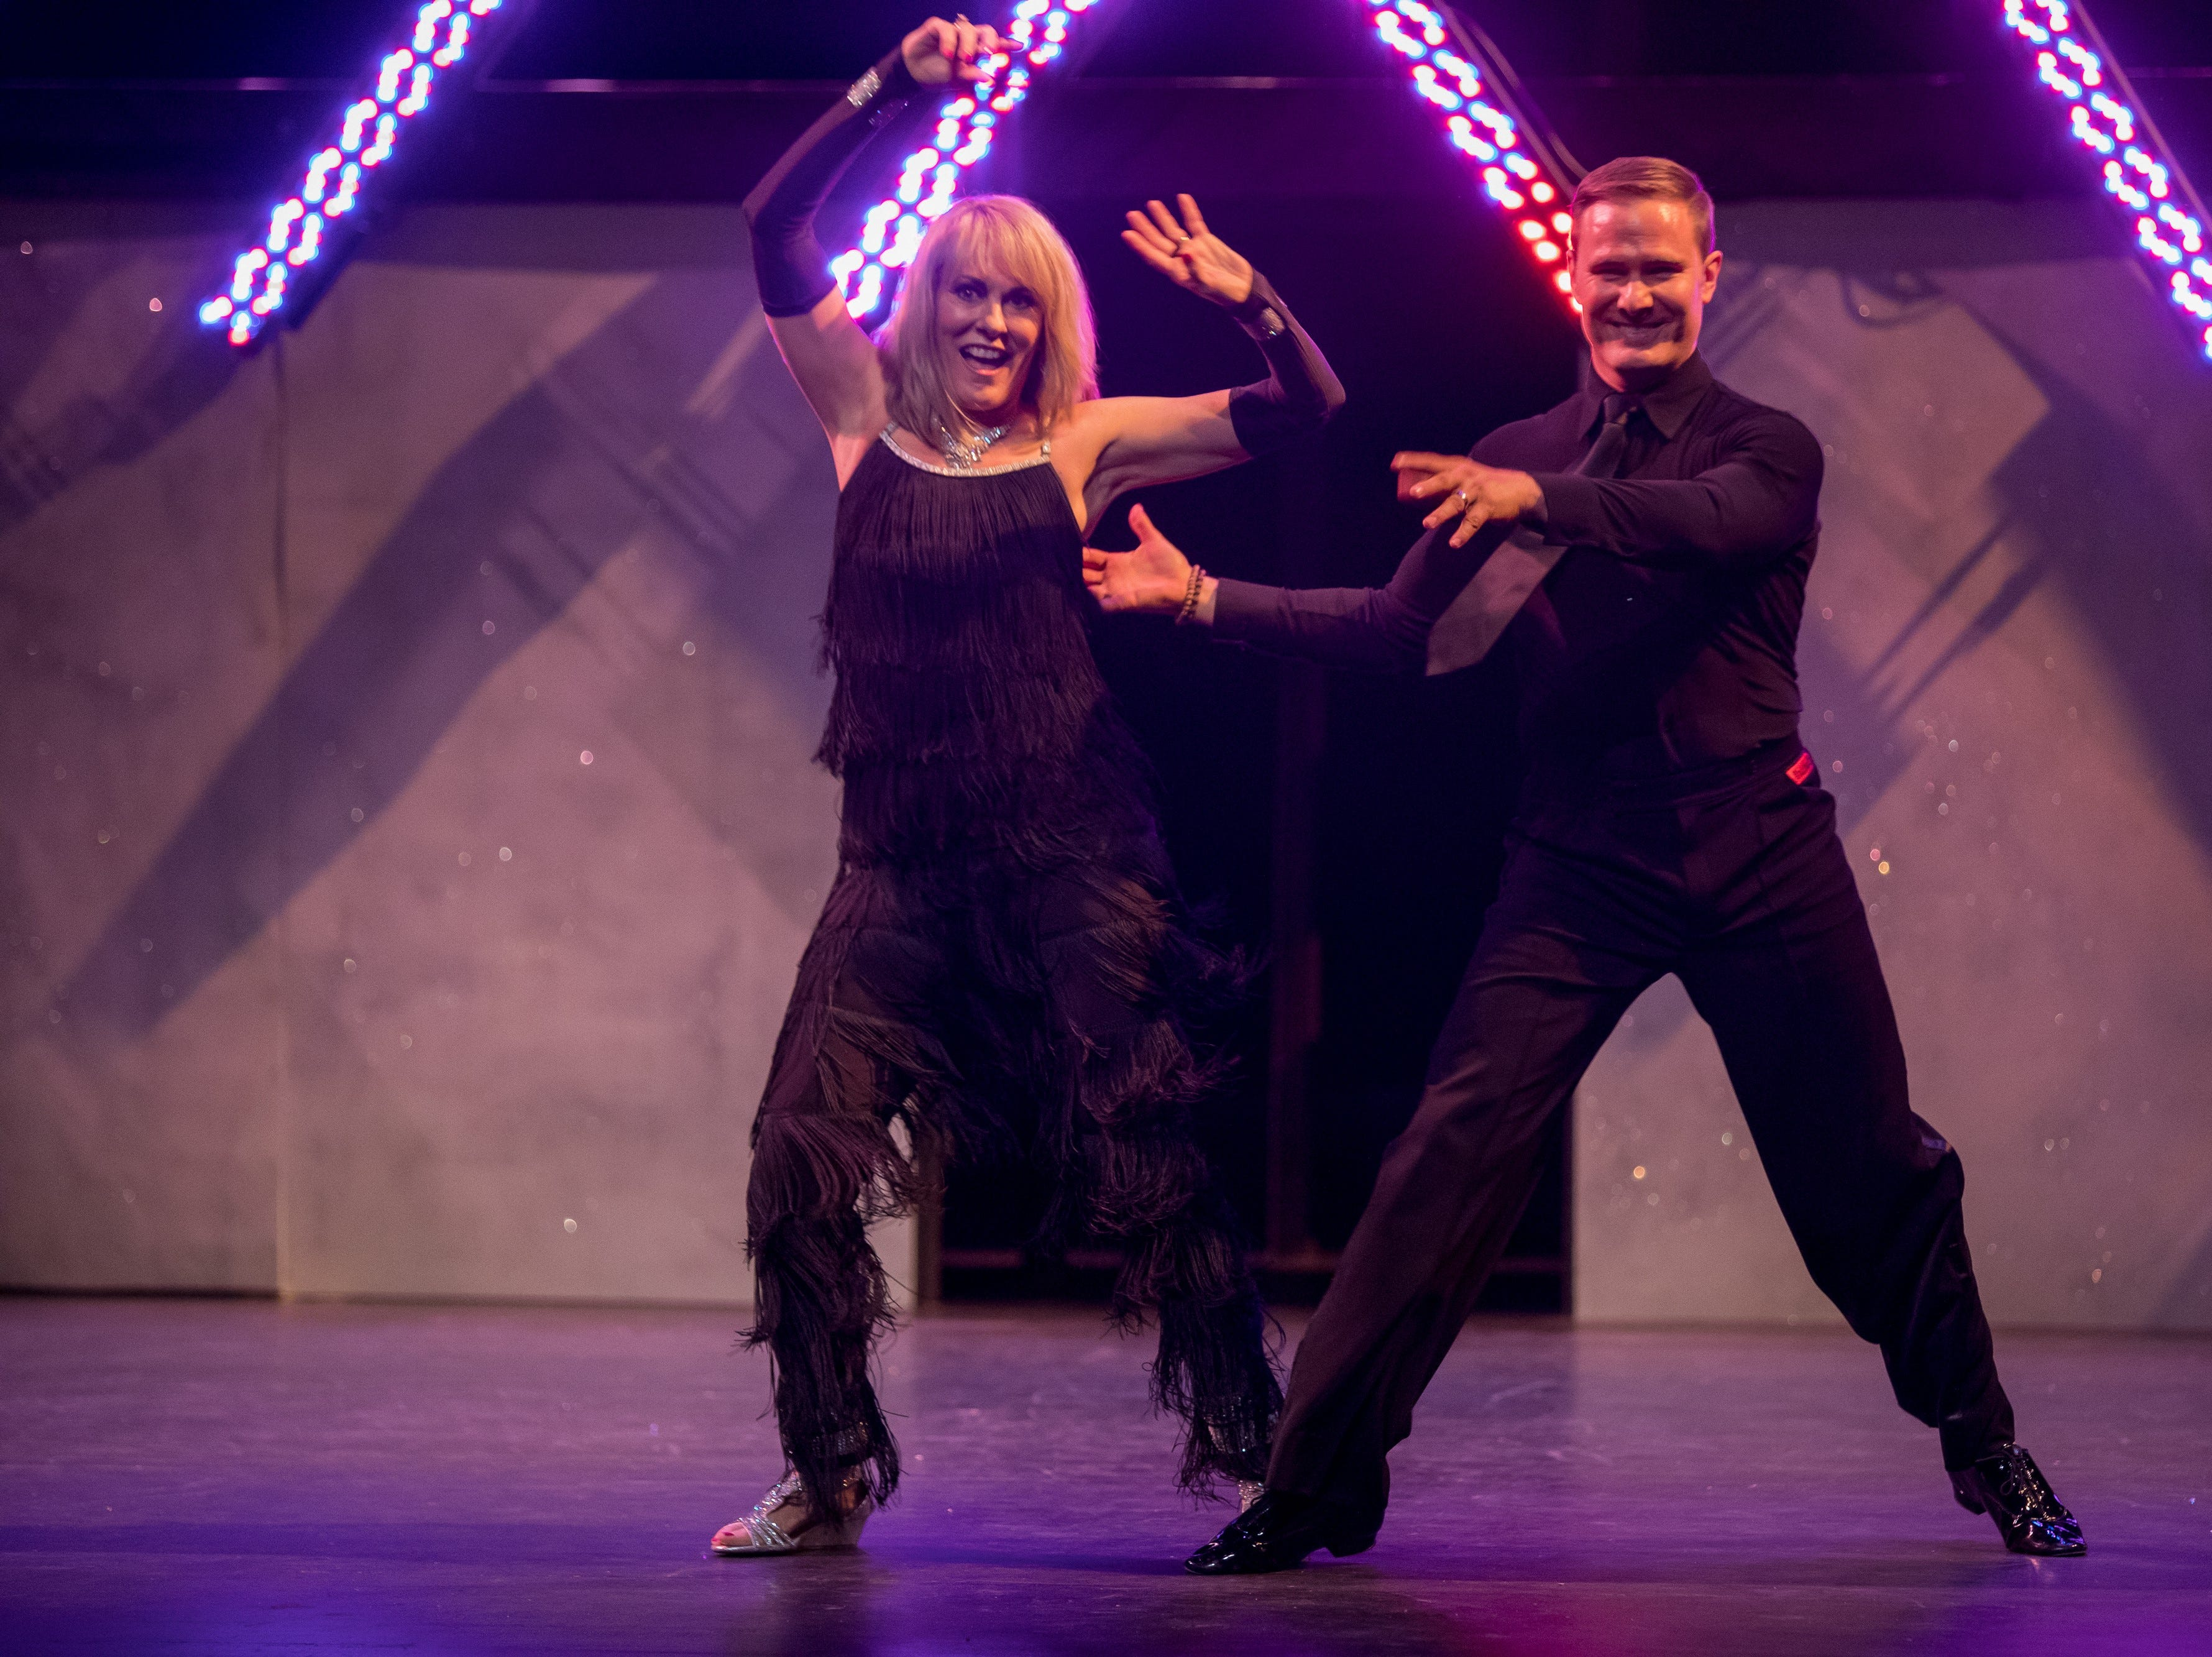 """Tracy Buchanan, CarePartners CEO, and professional dance partner Jake Lavendar dance to the song """"Love Shack,"""" in the Dancing With The Local Stars show Feb. 24, 2019, at Diana Wortham Theatre in Asheville."""